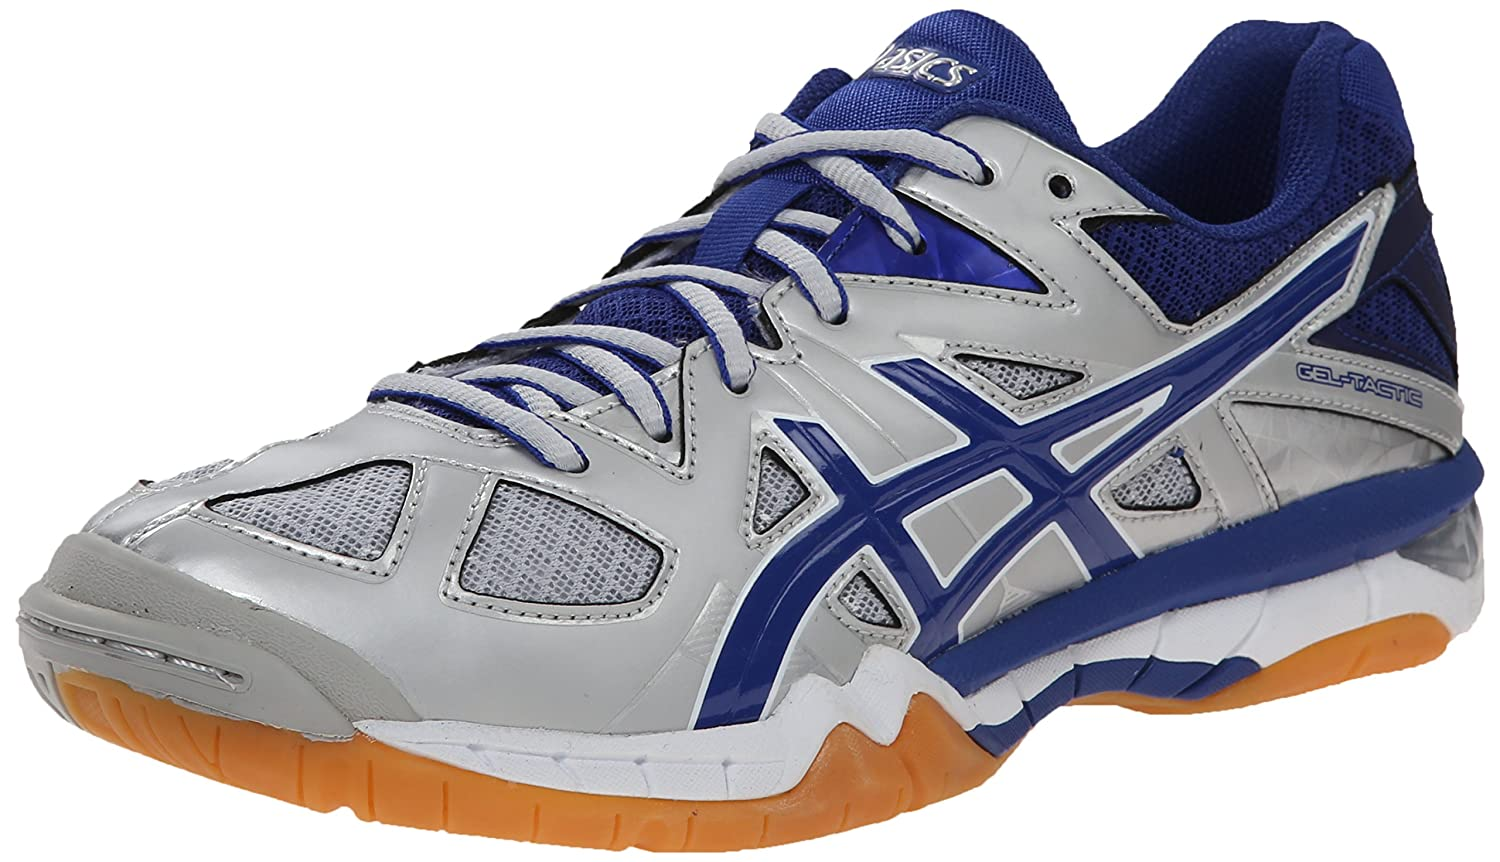 ASICS Women's Gel Tactic Volleyball Shoe B00Q2JQ3VI 13 B(M) US|Silver/Royal/White